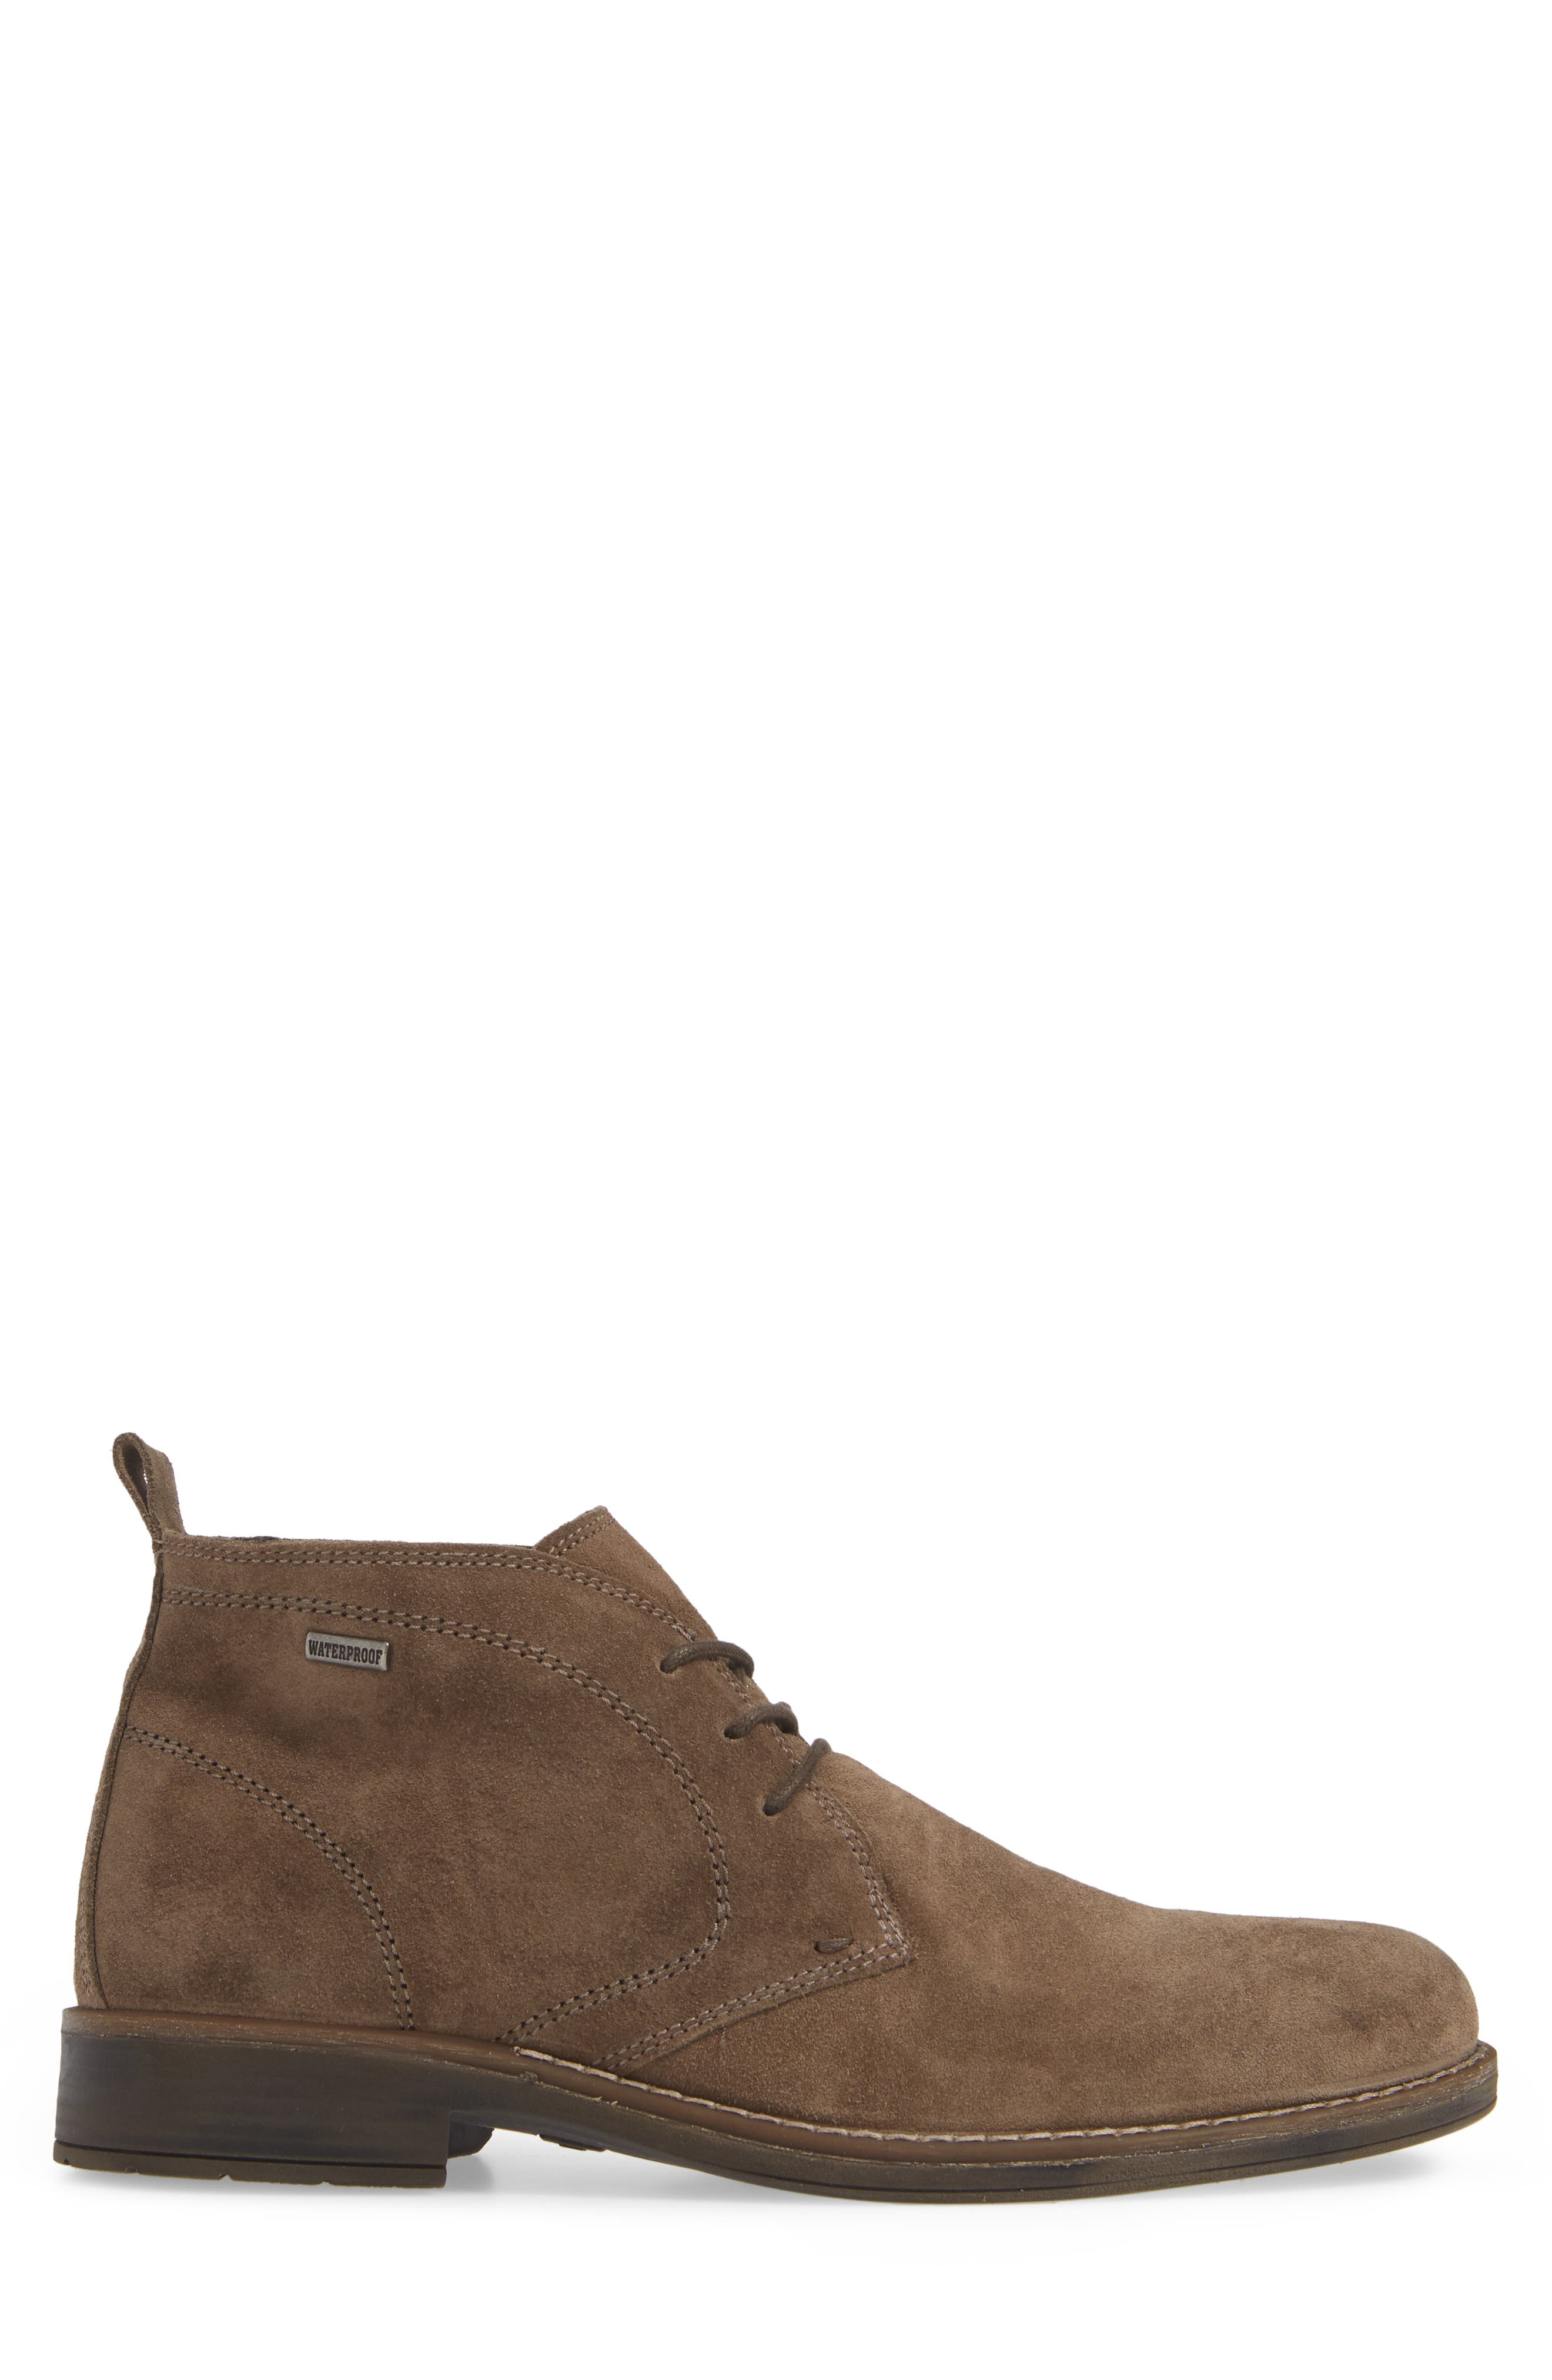 Stevens Waterproof Chukka Boot,                             Alternate thumbnail 3, color,                             TAUPE SUEDE